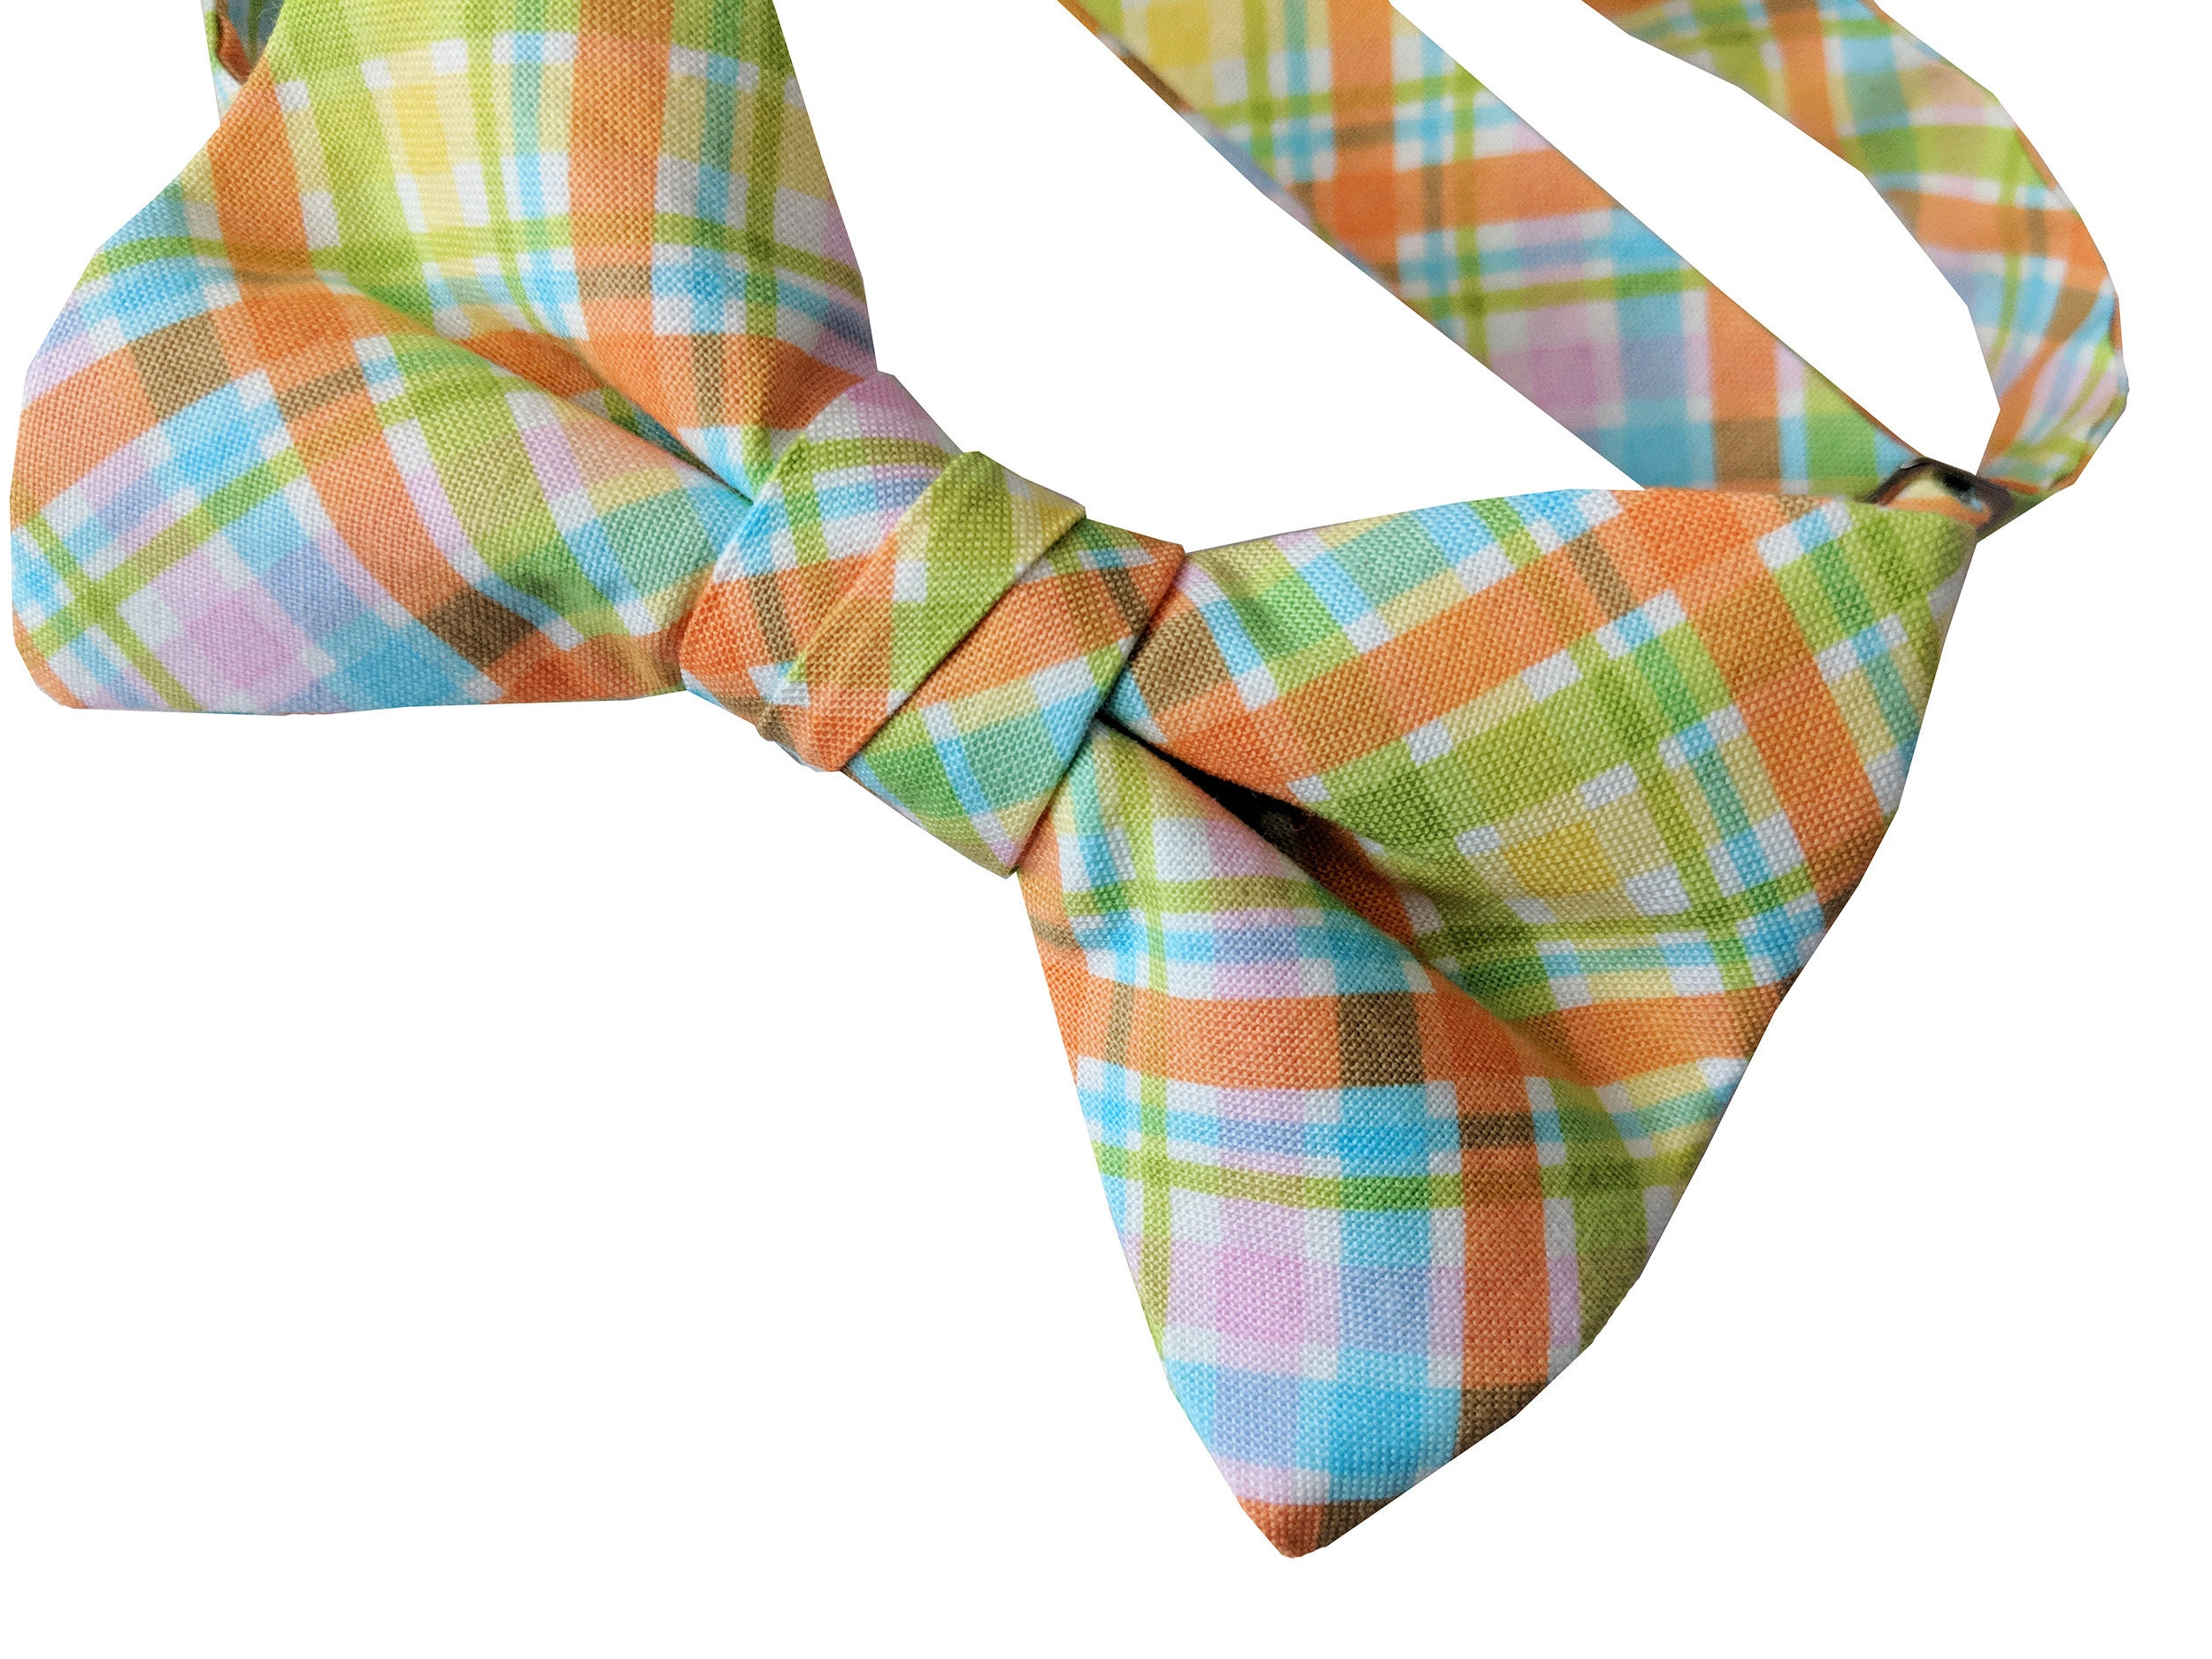 Spring Plaid Colorful Easter Holiday Celebration Adult Men/'s to Baby Sizing Pre-tied Bow Tie Crafted in the USA